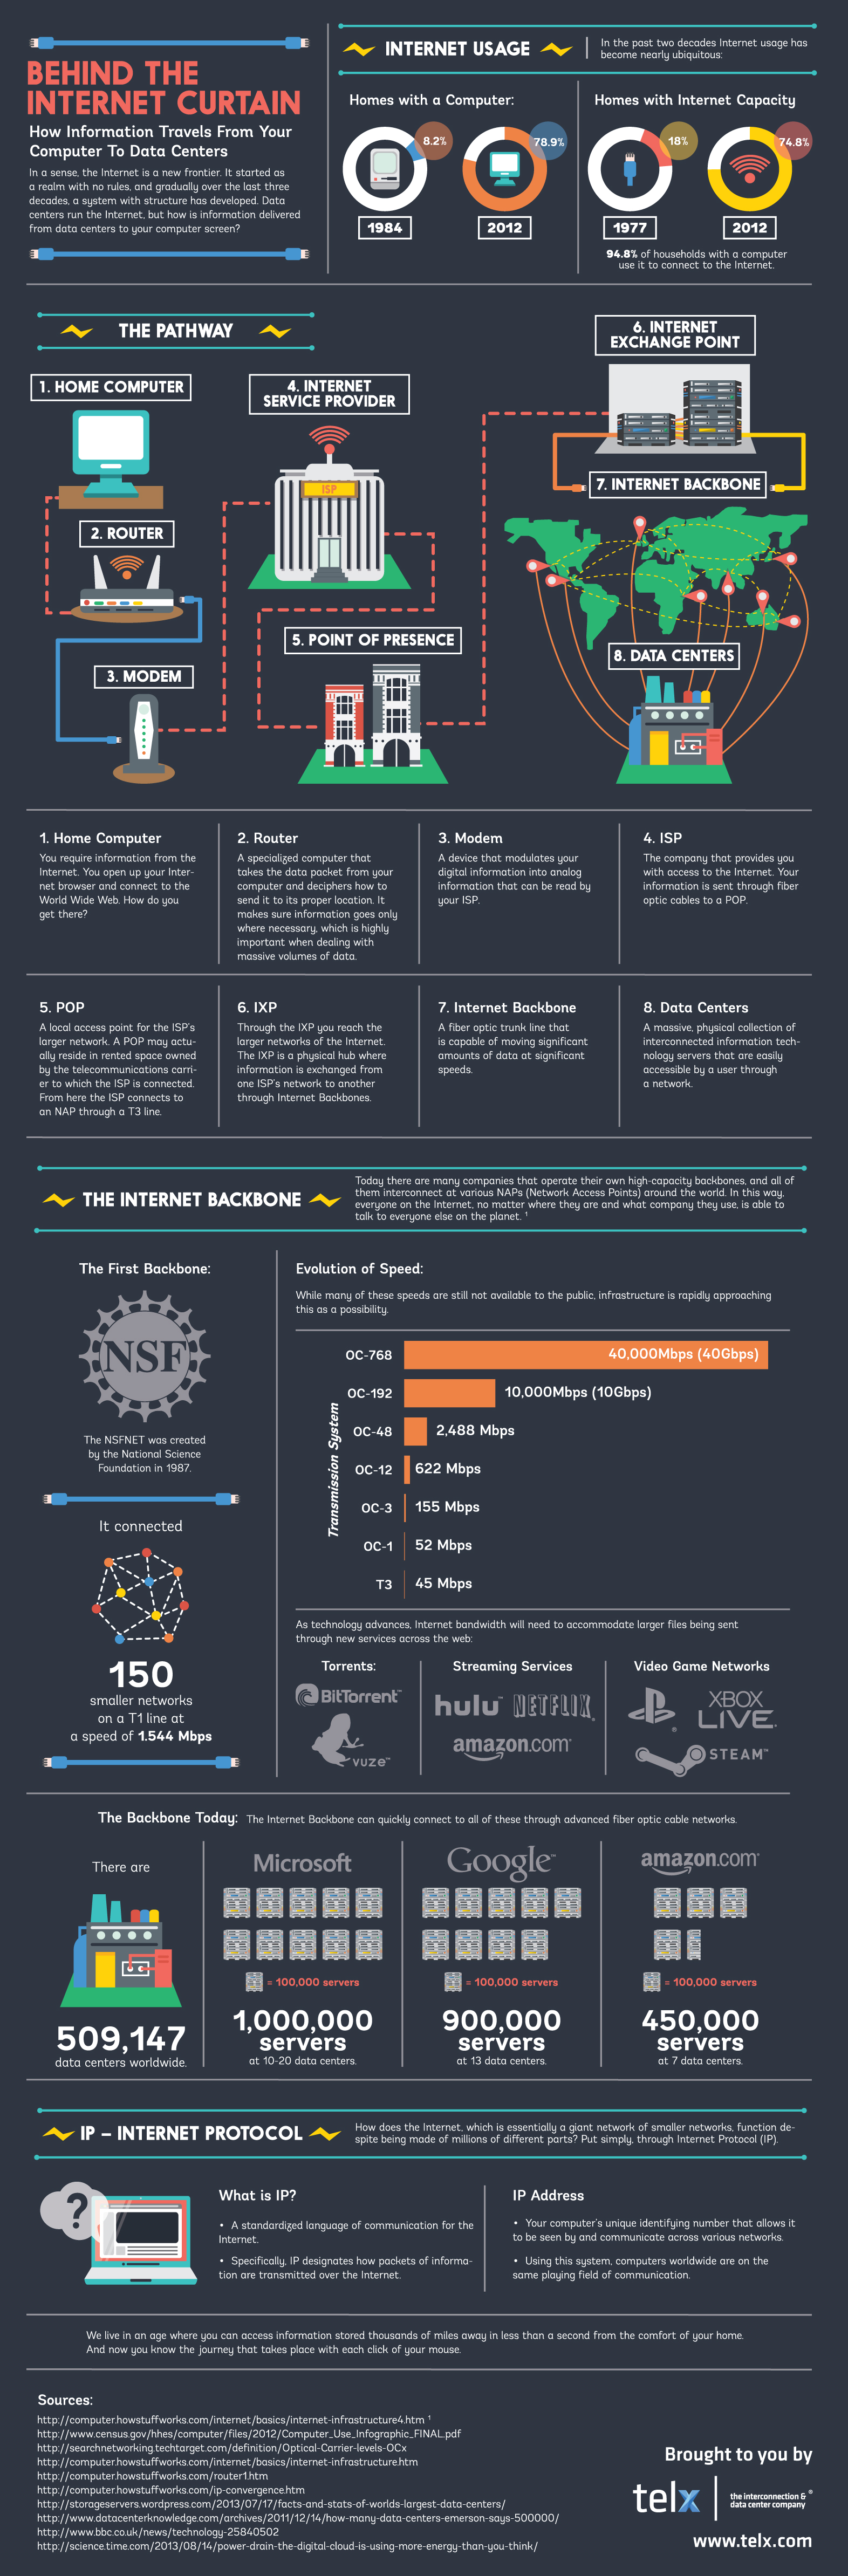 Telx-Behind-the-Internet-Curtain-Infographic